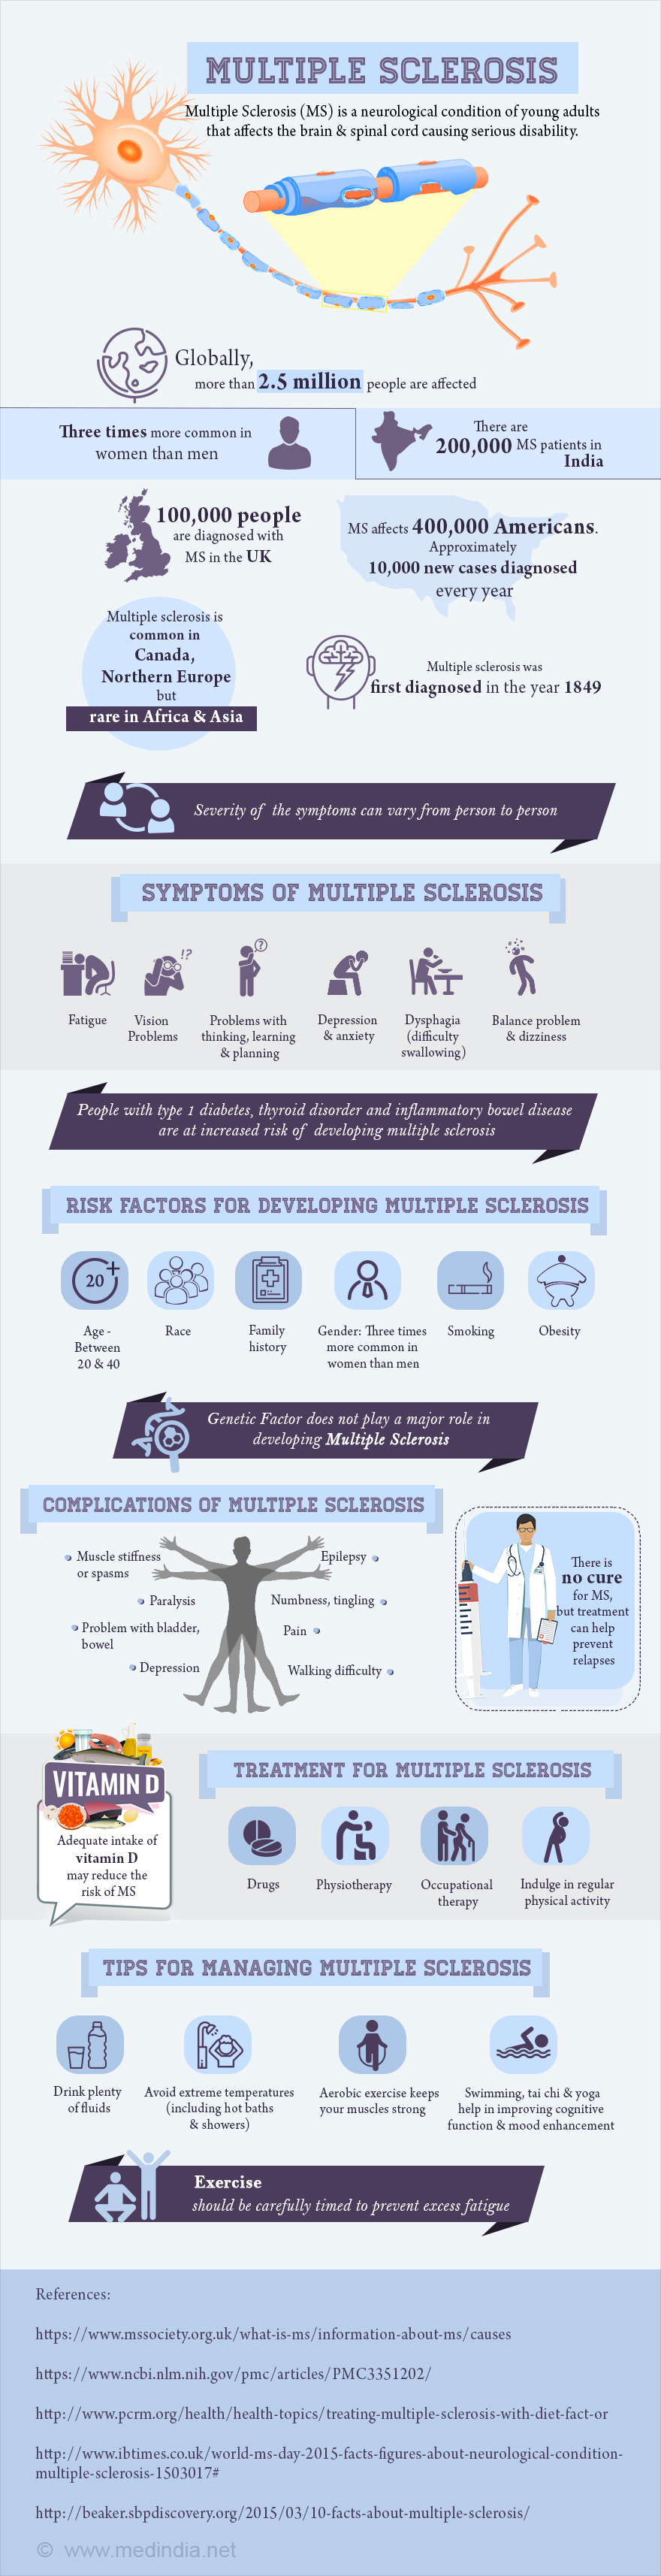 Multiple Sclerosis - Infographic